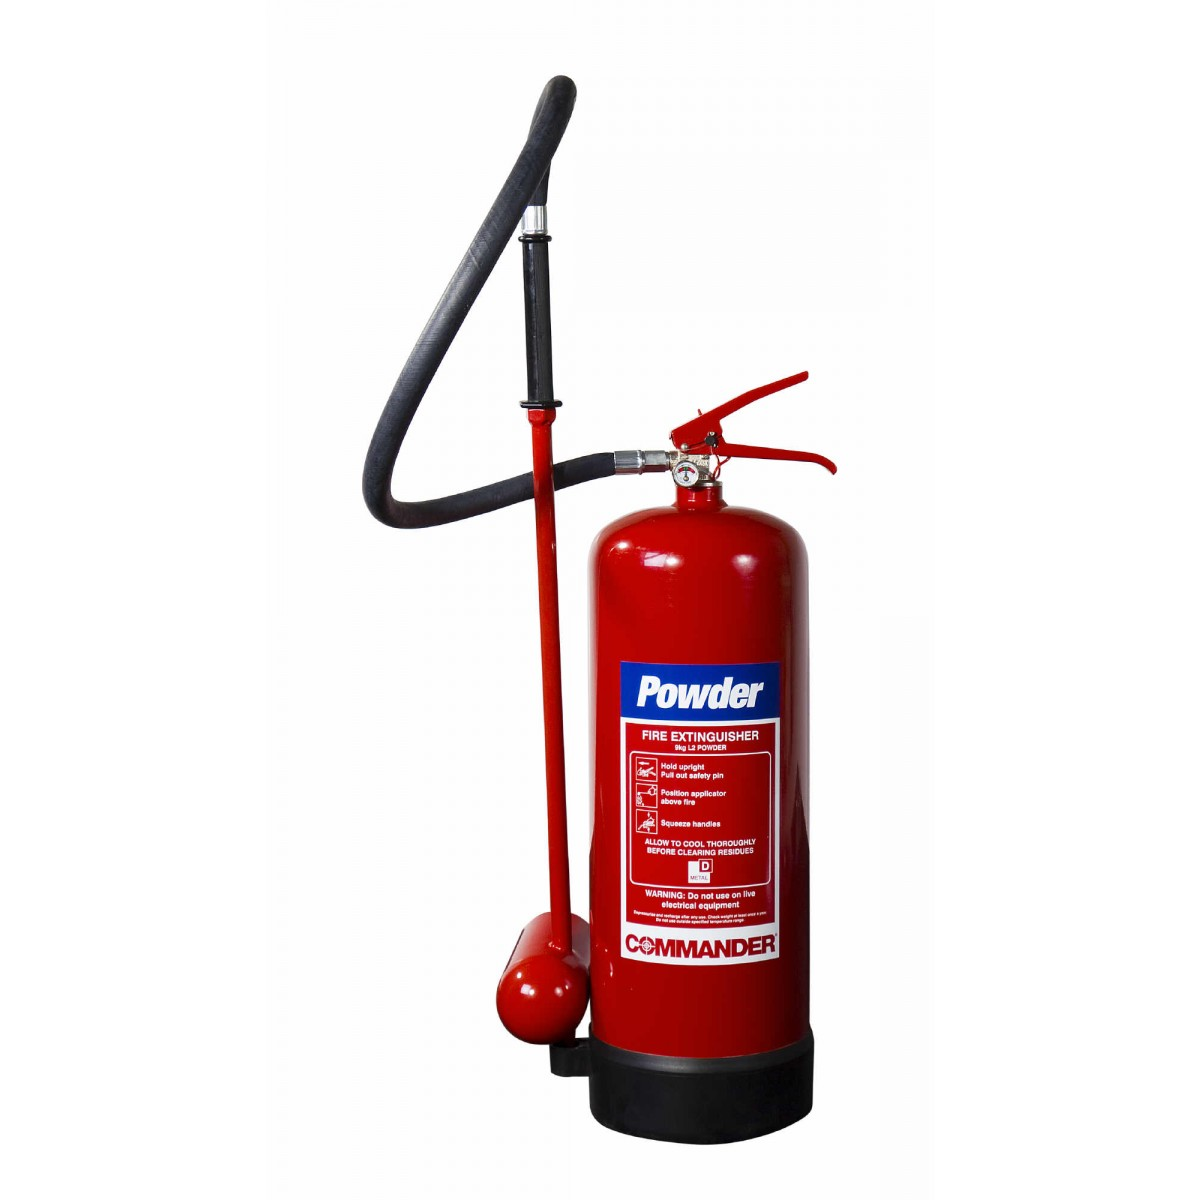 special powder fire extinguisher for metal and lithium fires